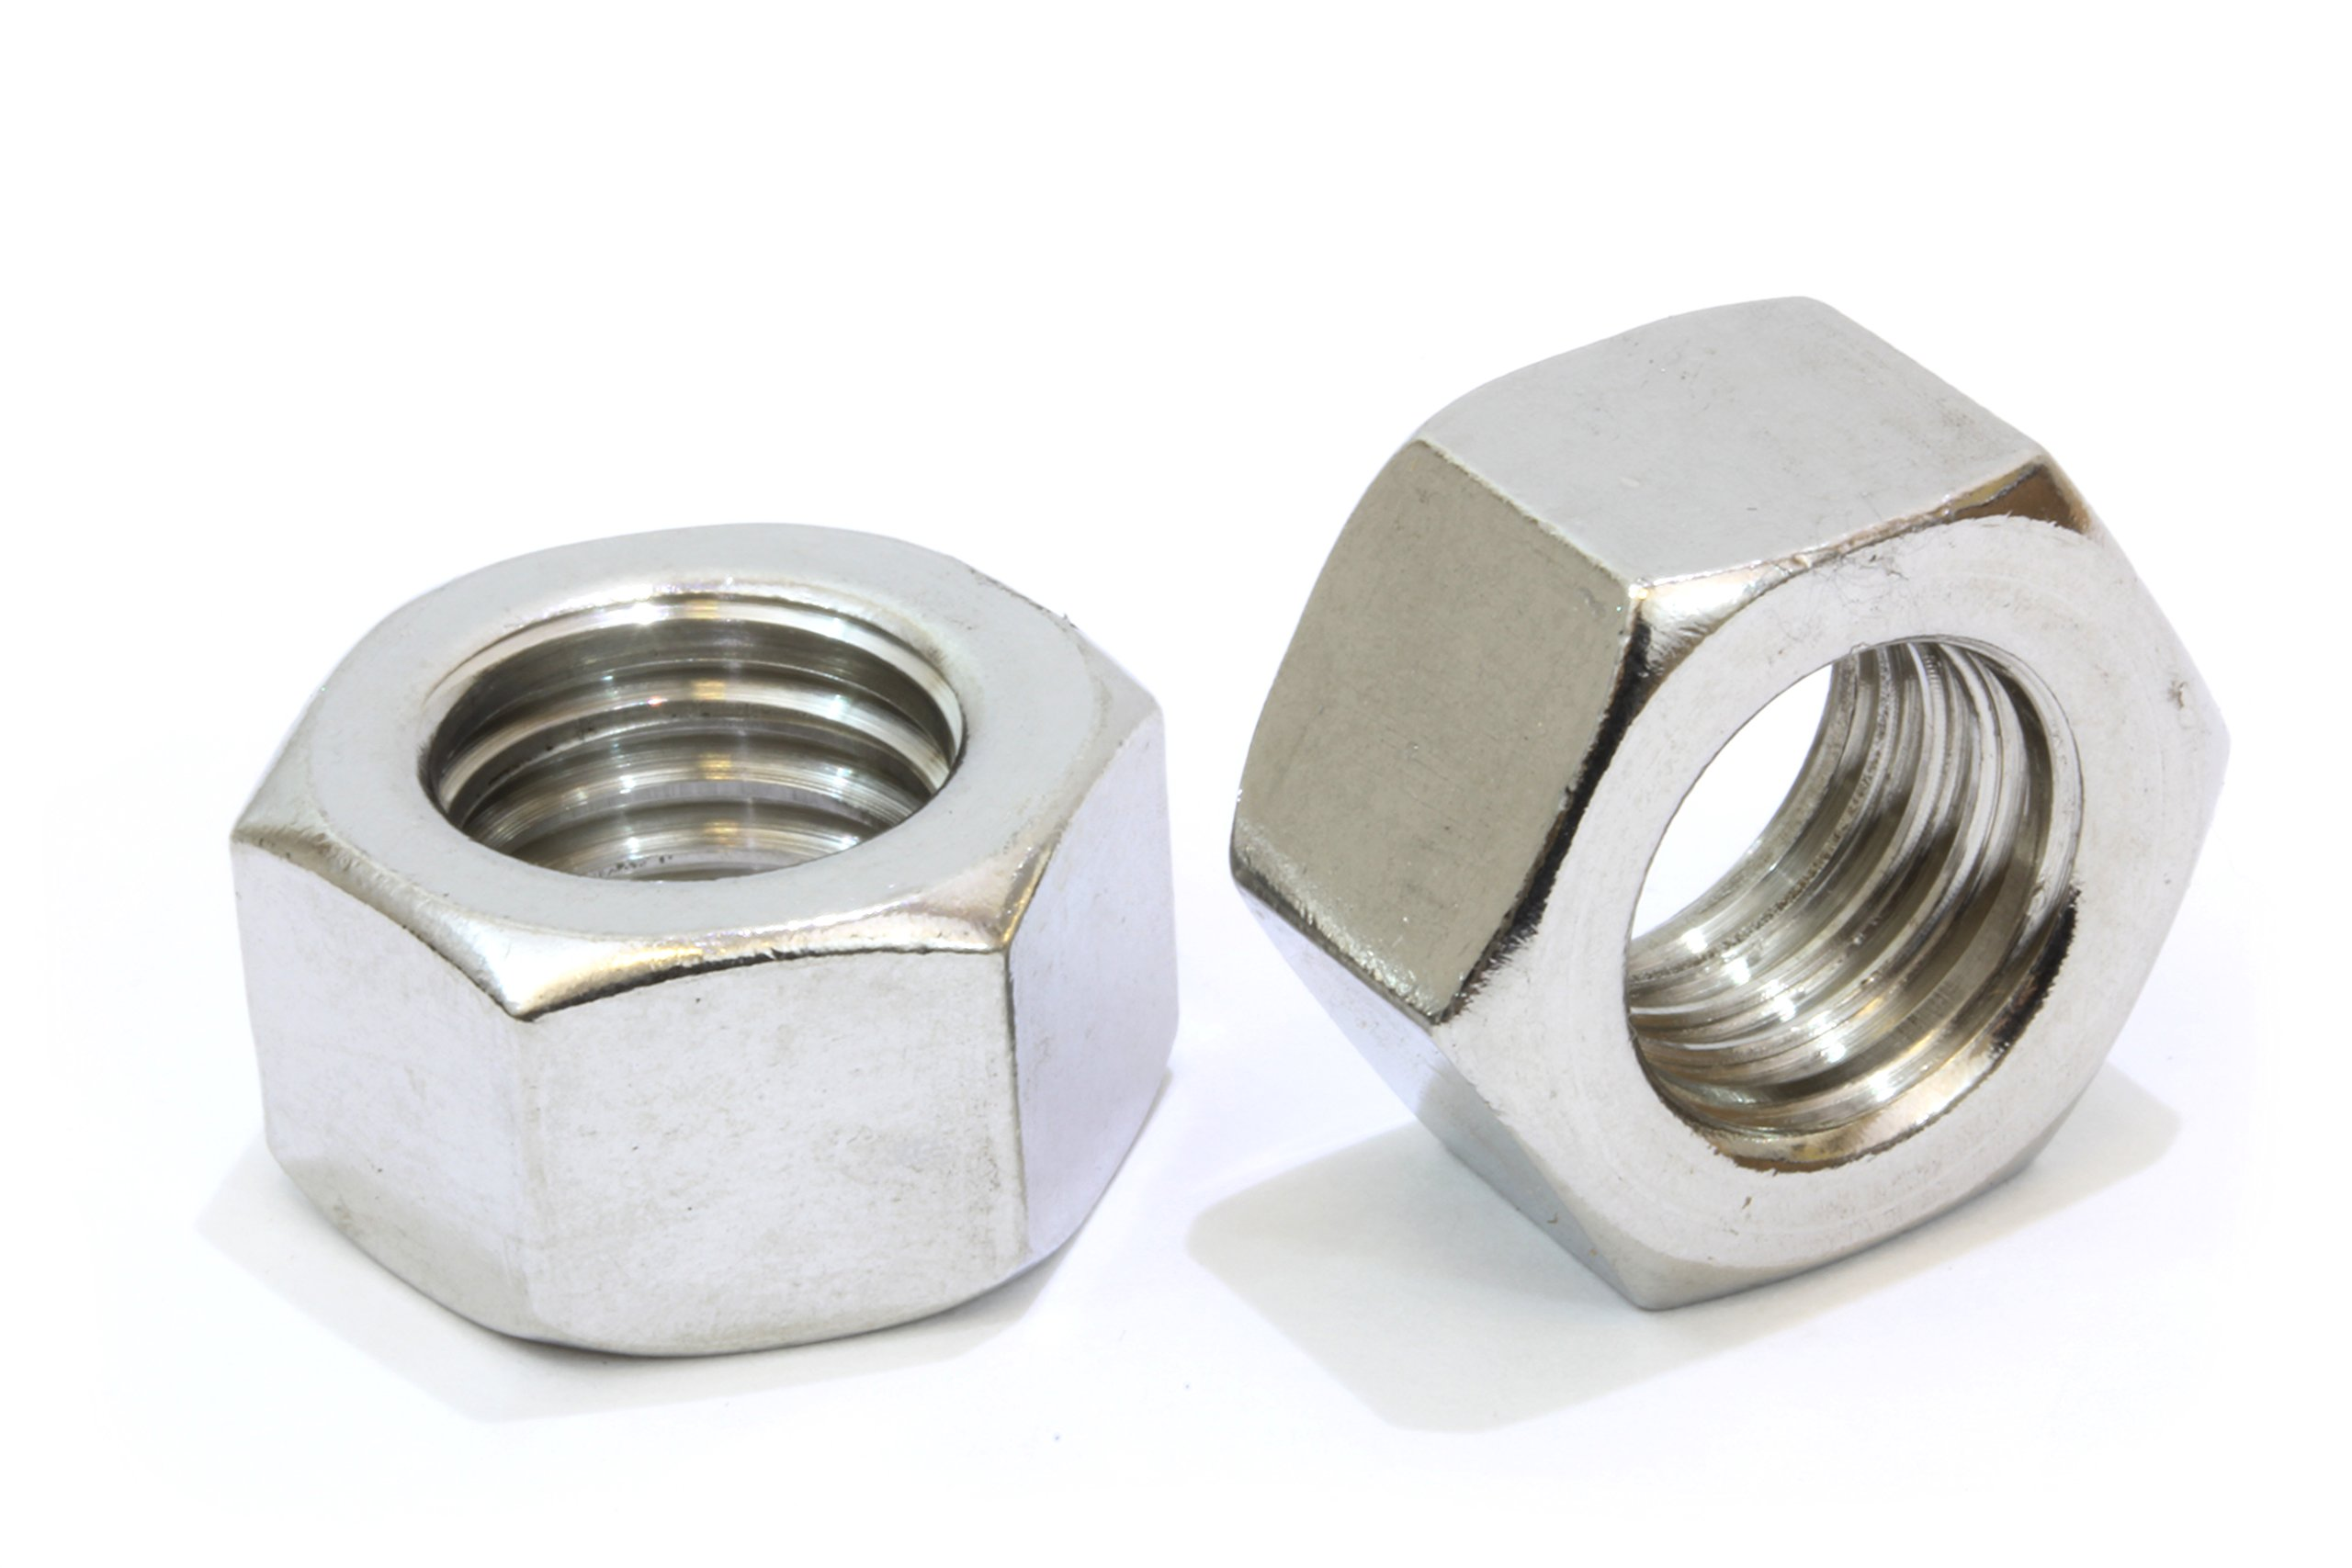 5/16''-18 Stainless Hex Nut (100 Pack), By Bolt Dropper, 304 18-8 Stainless Steel Nuts